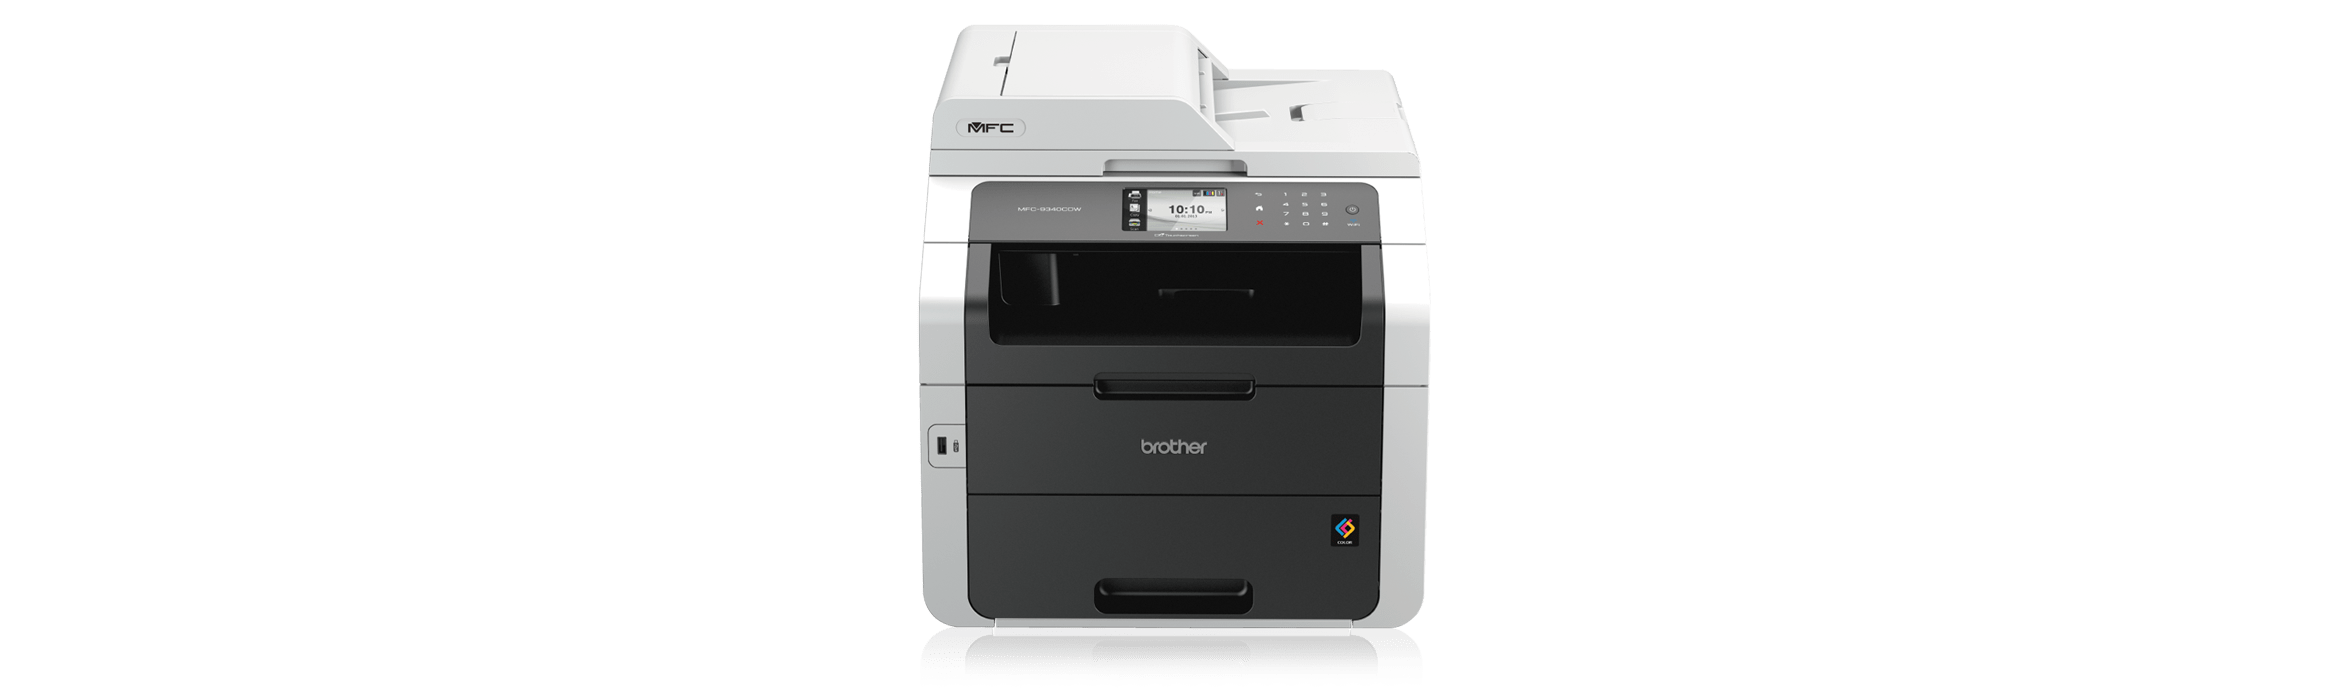 Image shows Brother MFC9340CDW Wireless Colour Laser Printer on promotion